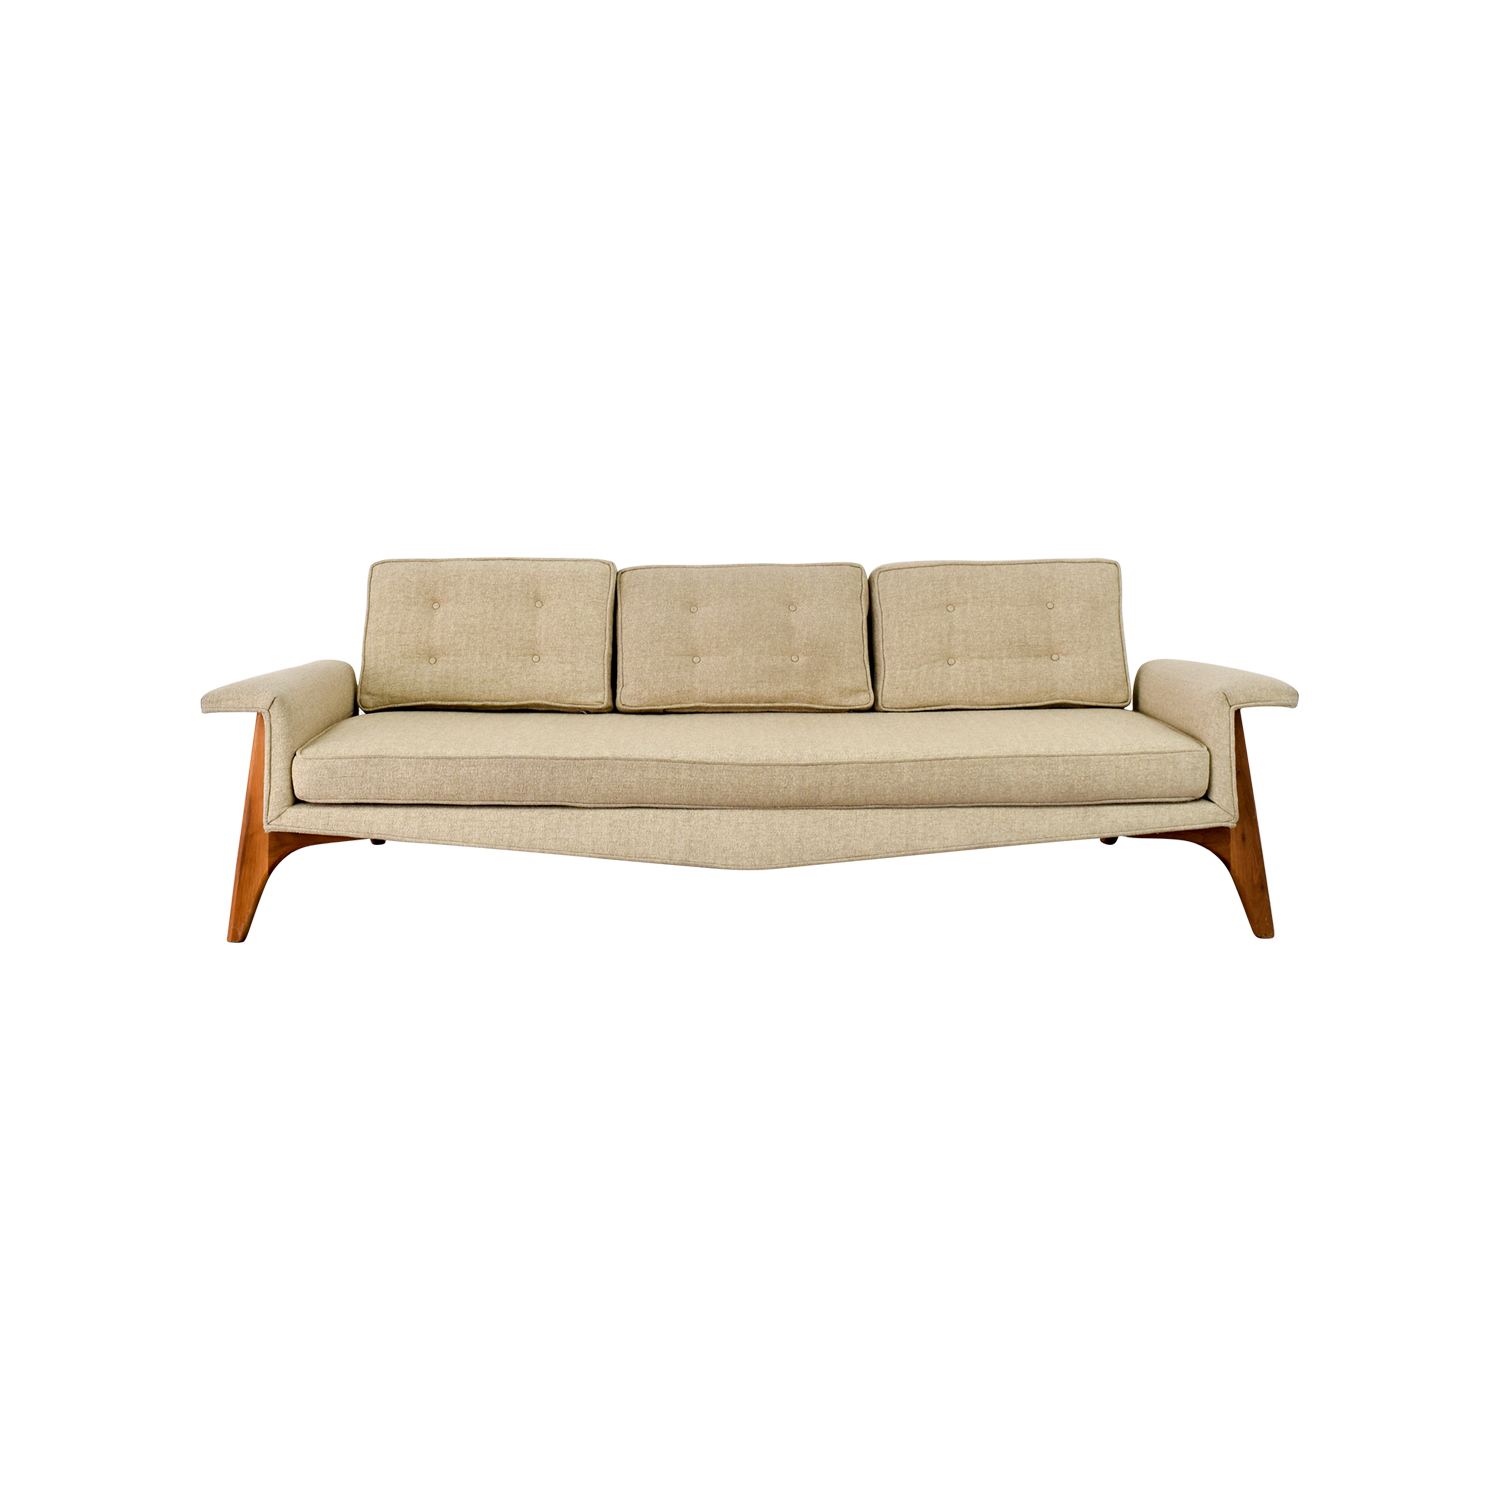 Adrian Pearsall for Craft Associates Adrian Pearsall for Craft Associates Mid-Century Sofa price